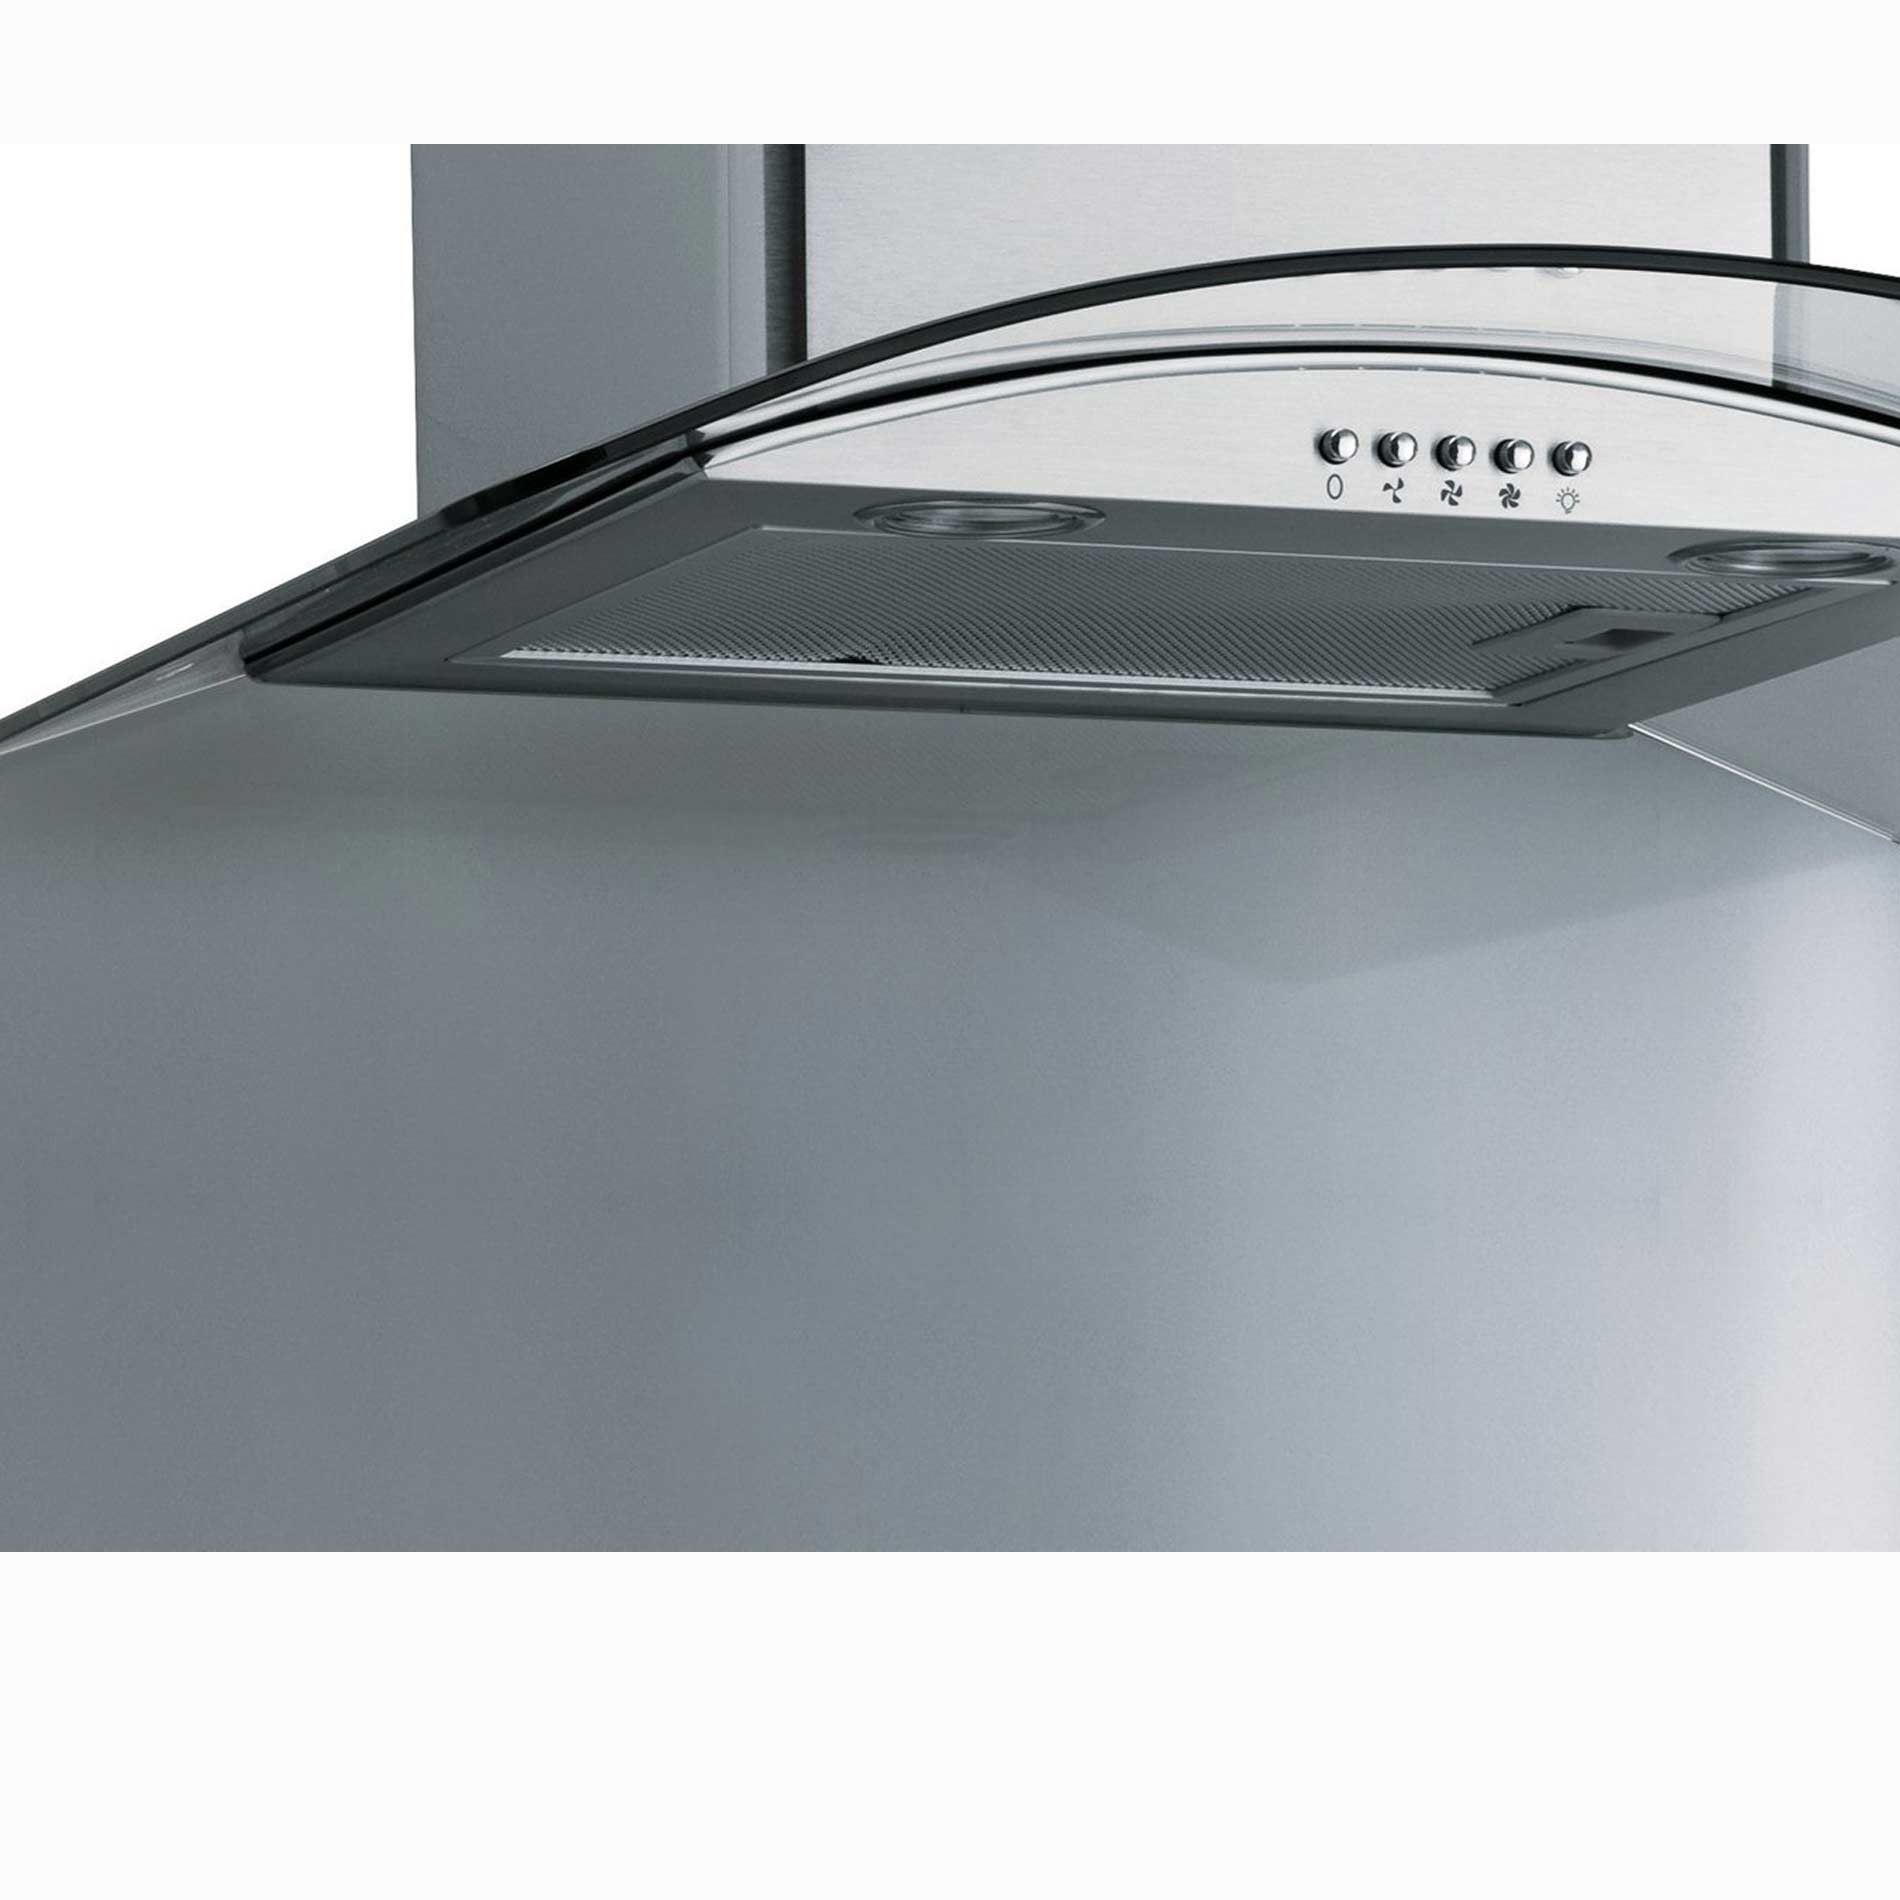 Picture of CSBCURVE605 600mm Curved Stainless Steel Splashback